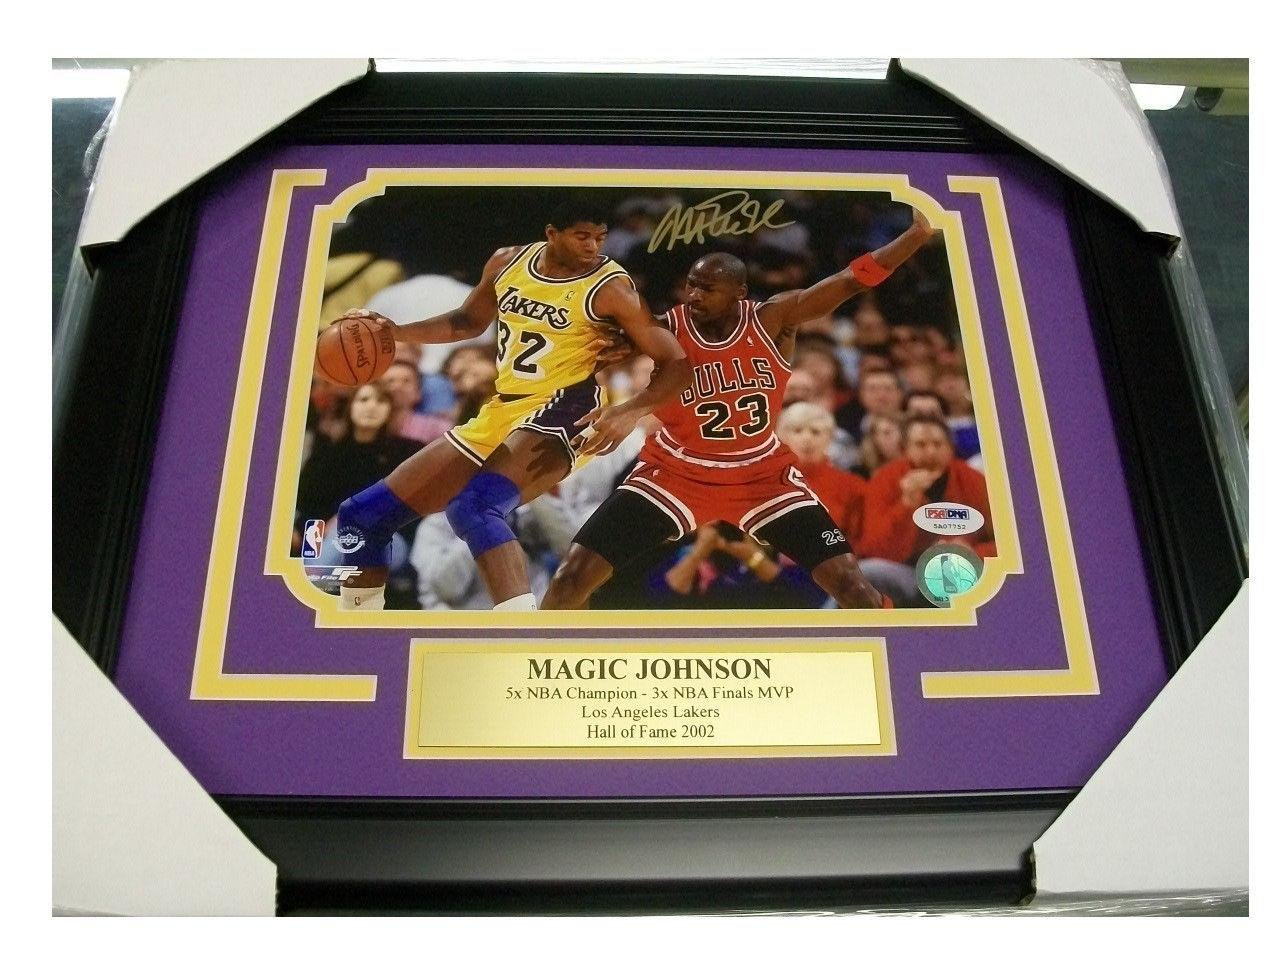 Magic Johnson Signed Picture - Vs Michael Jordan Psa 8x10 Framed Authentic - Autographed NBA Photos snsd tiffany autographed signed original photo 4 6 inches collection new korean freeshipping 012017 01